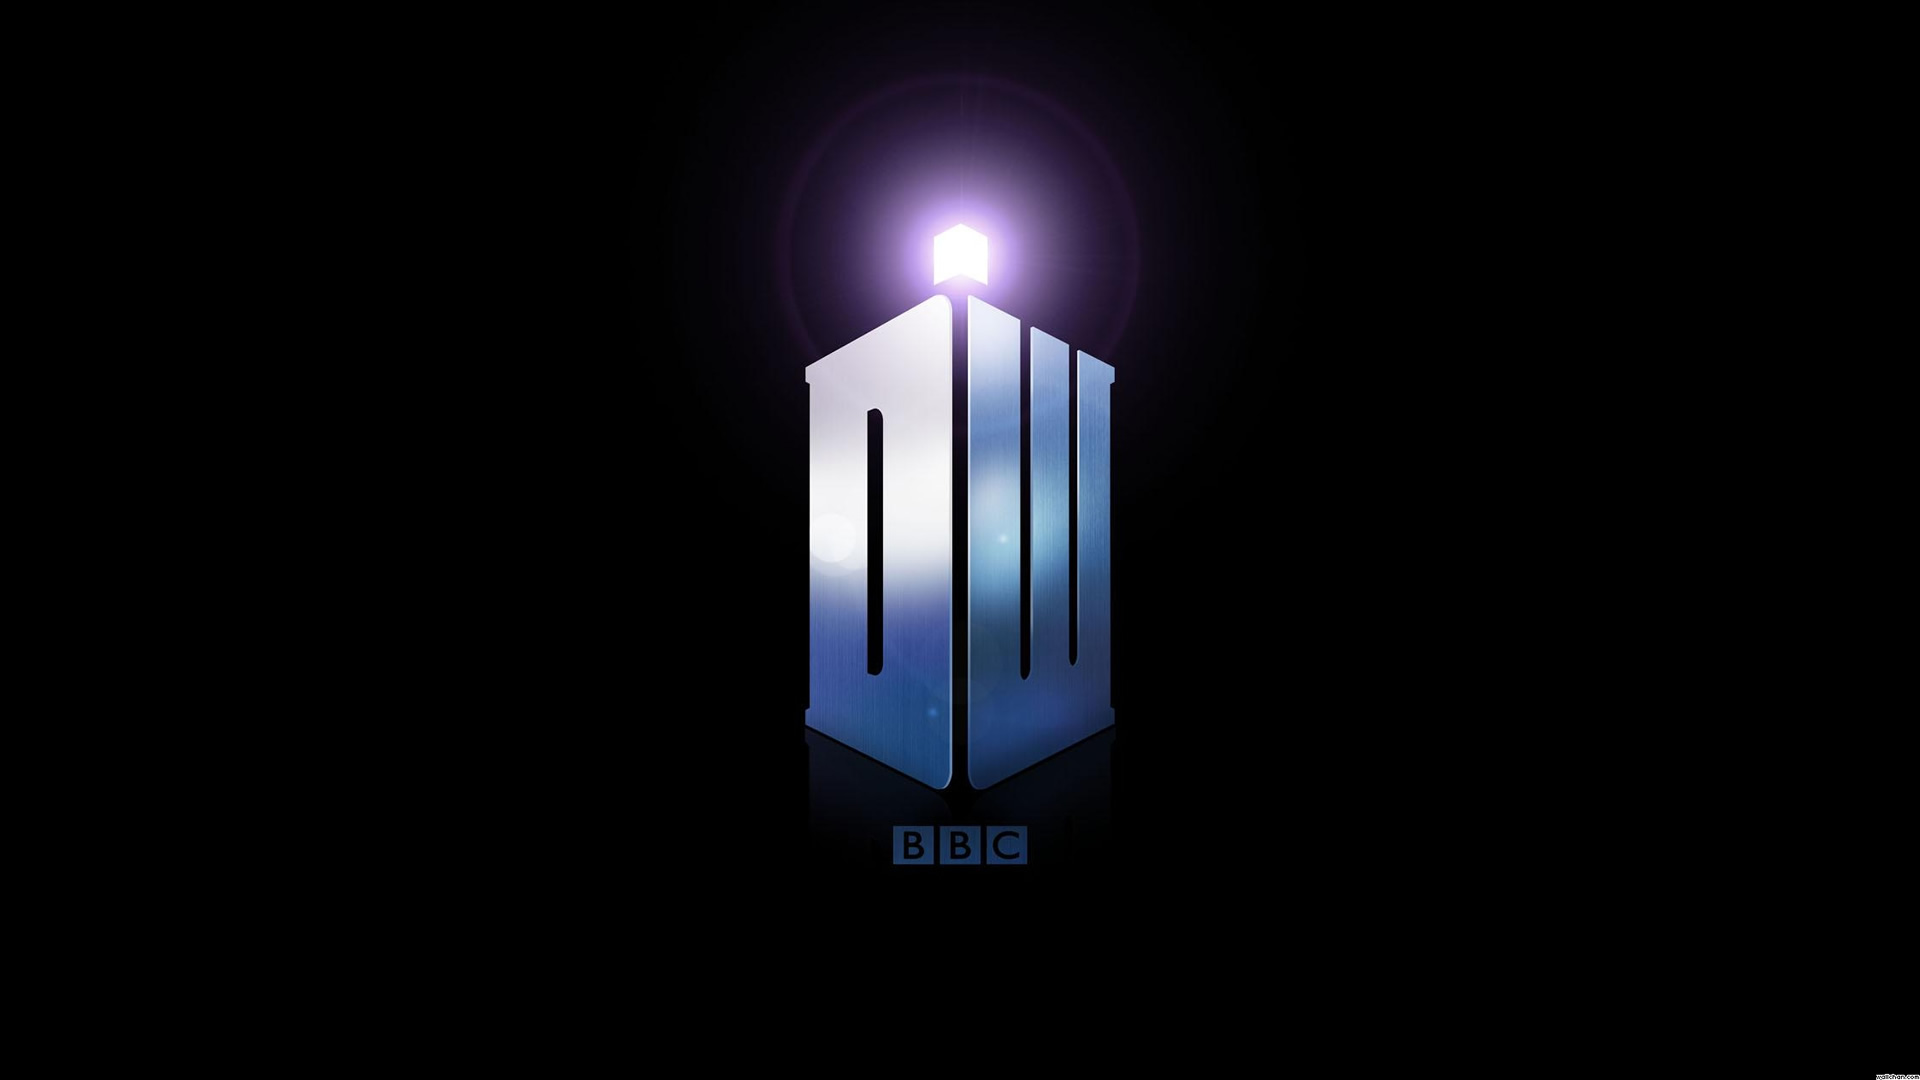 Free Download Doctor Who Logo Hd Wallpaper Fullhdwpp Full Hd